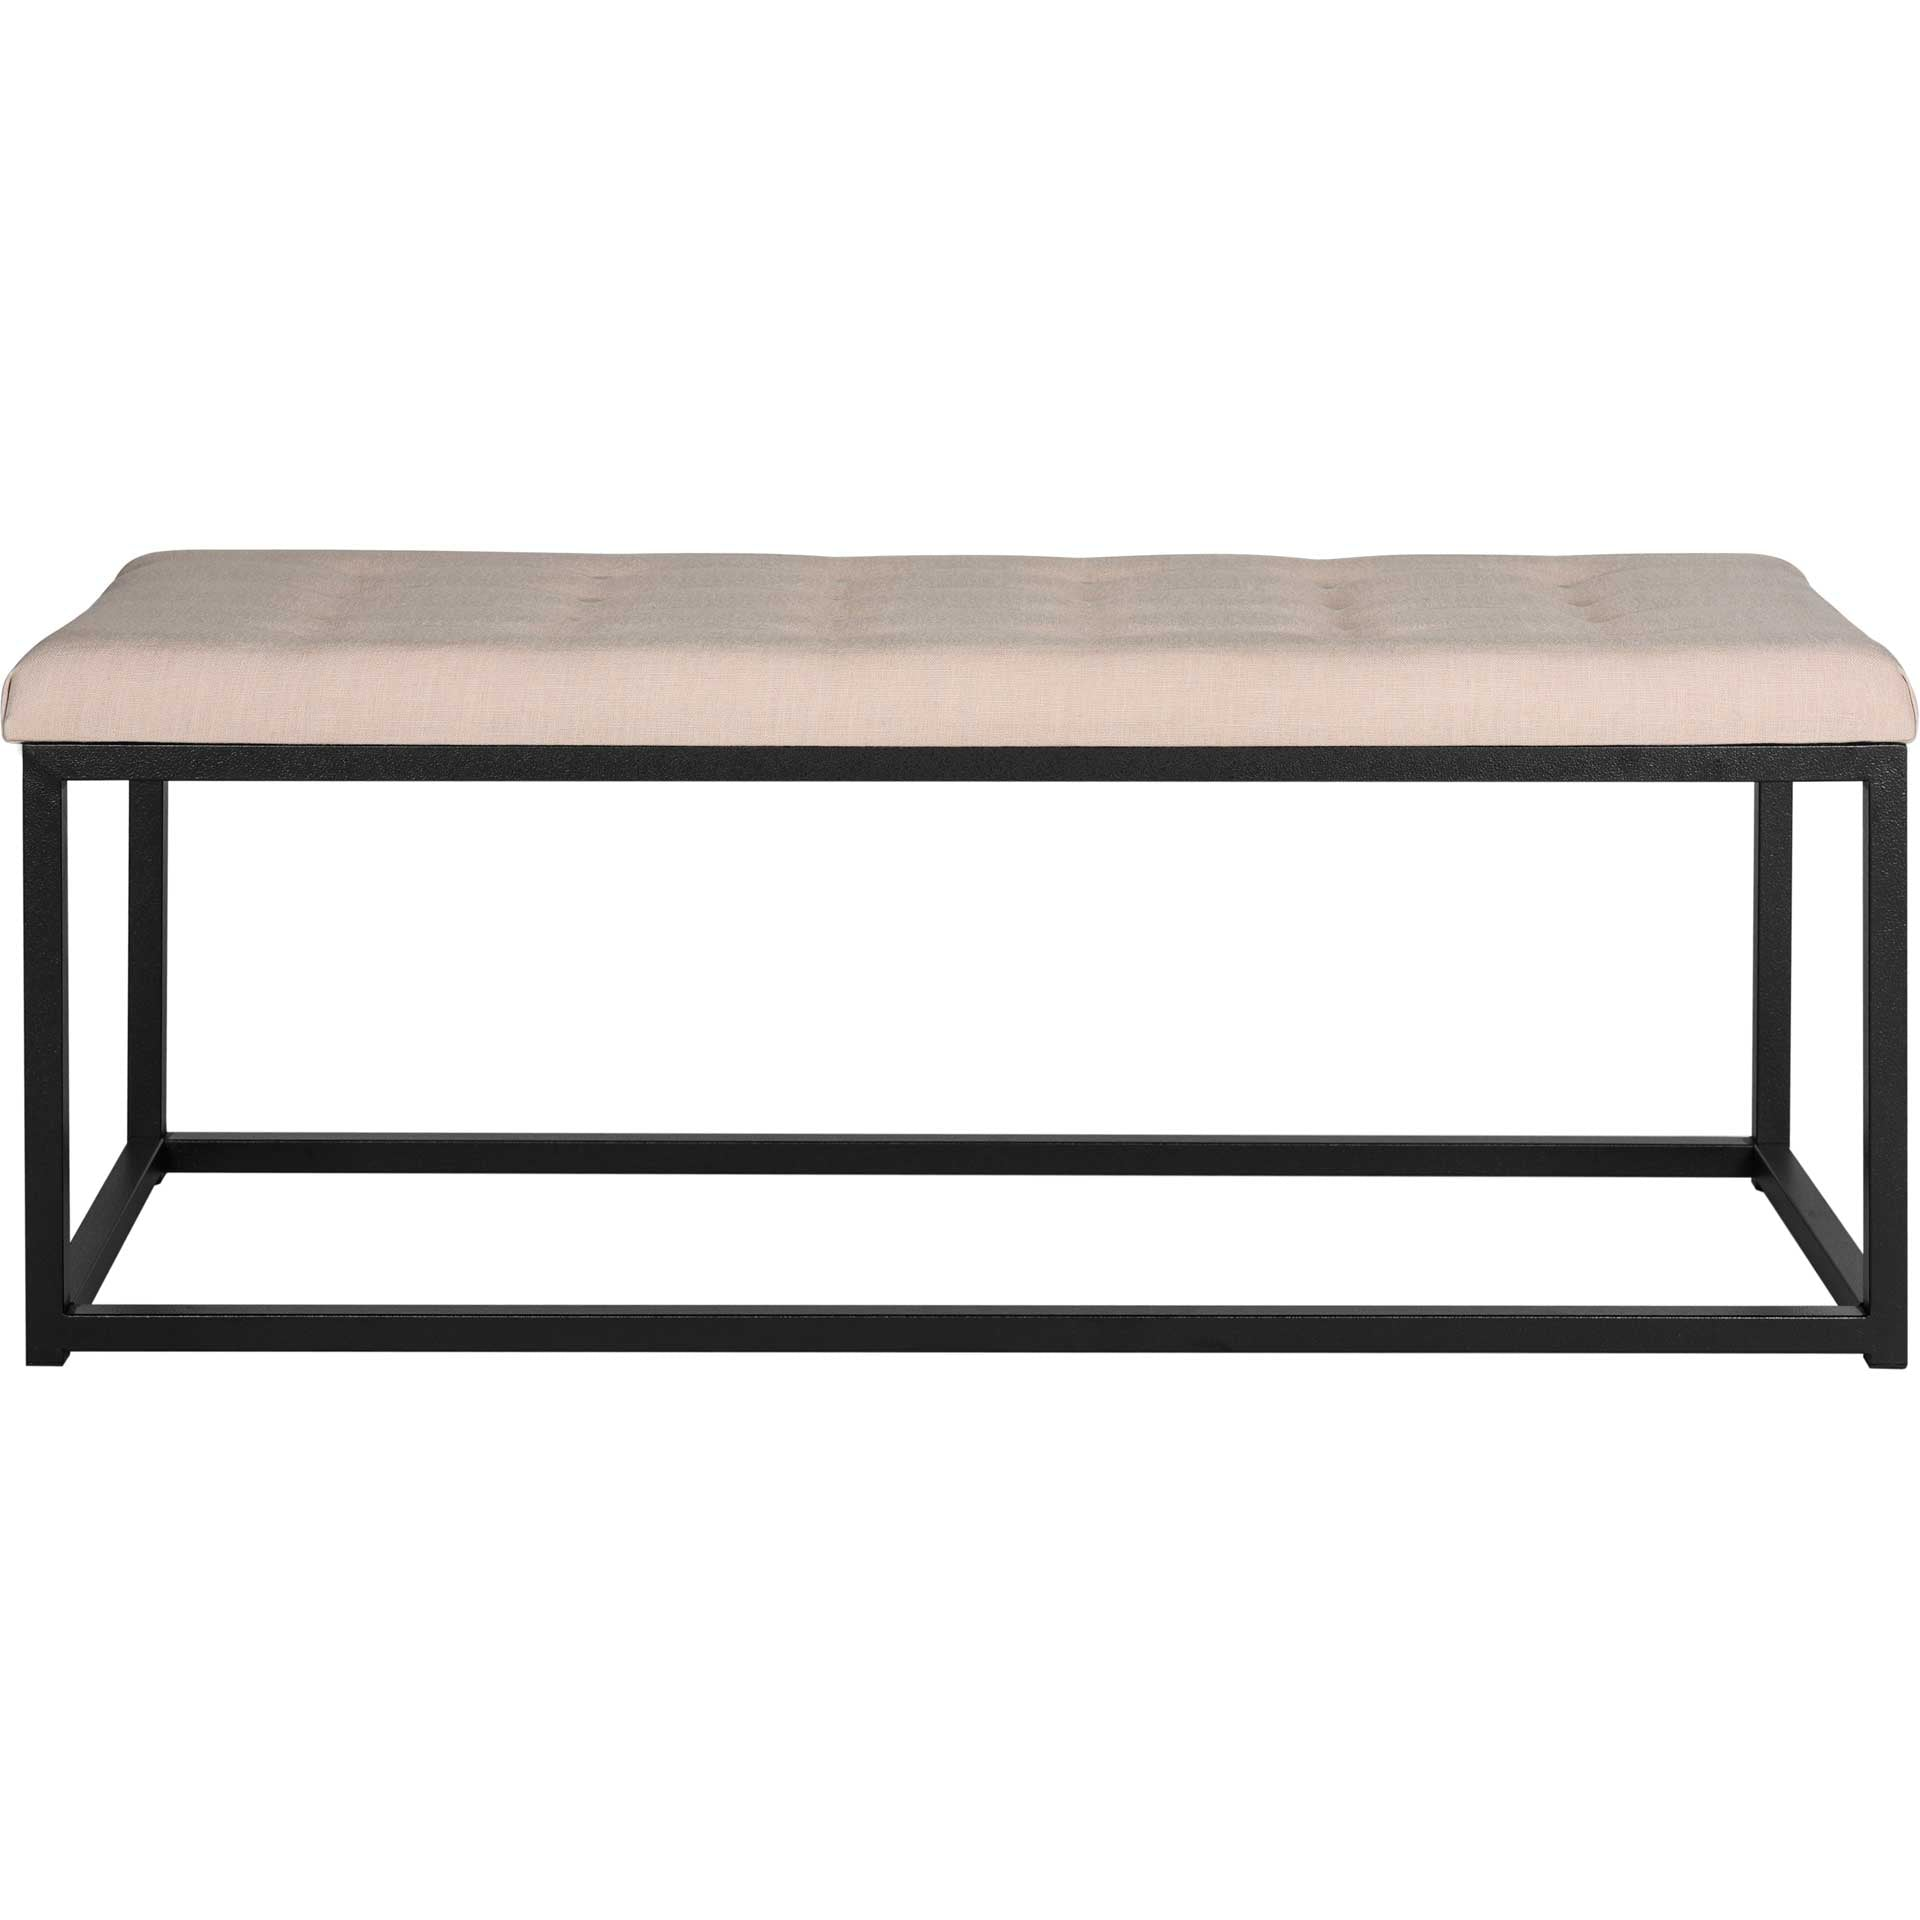 Reynolds Bench Beige/Black